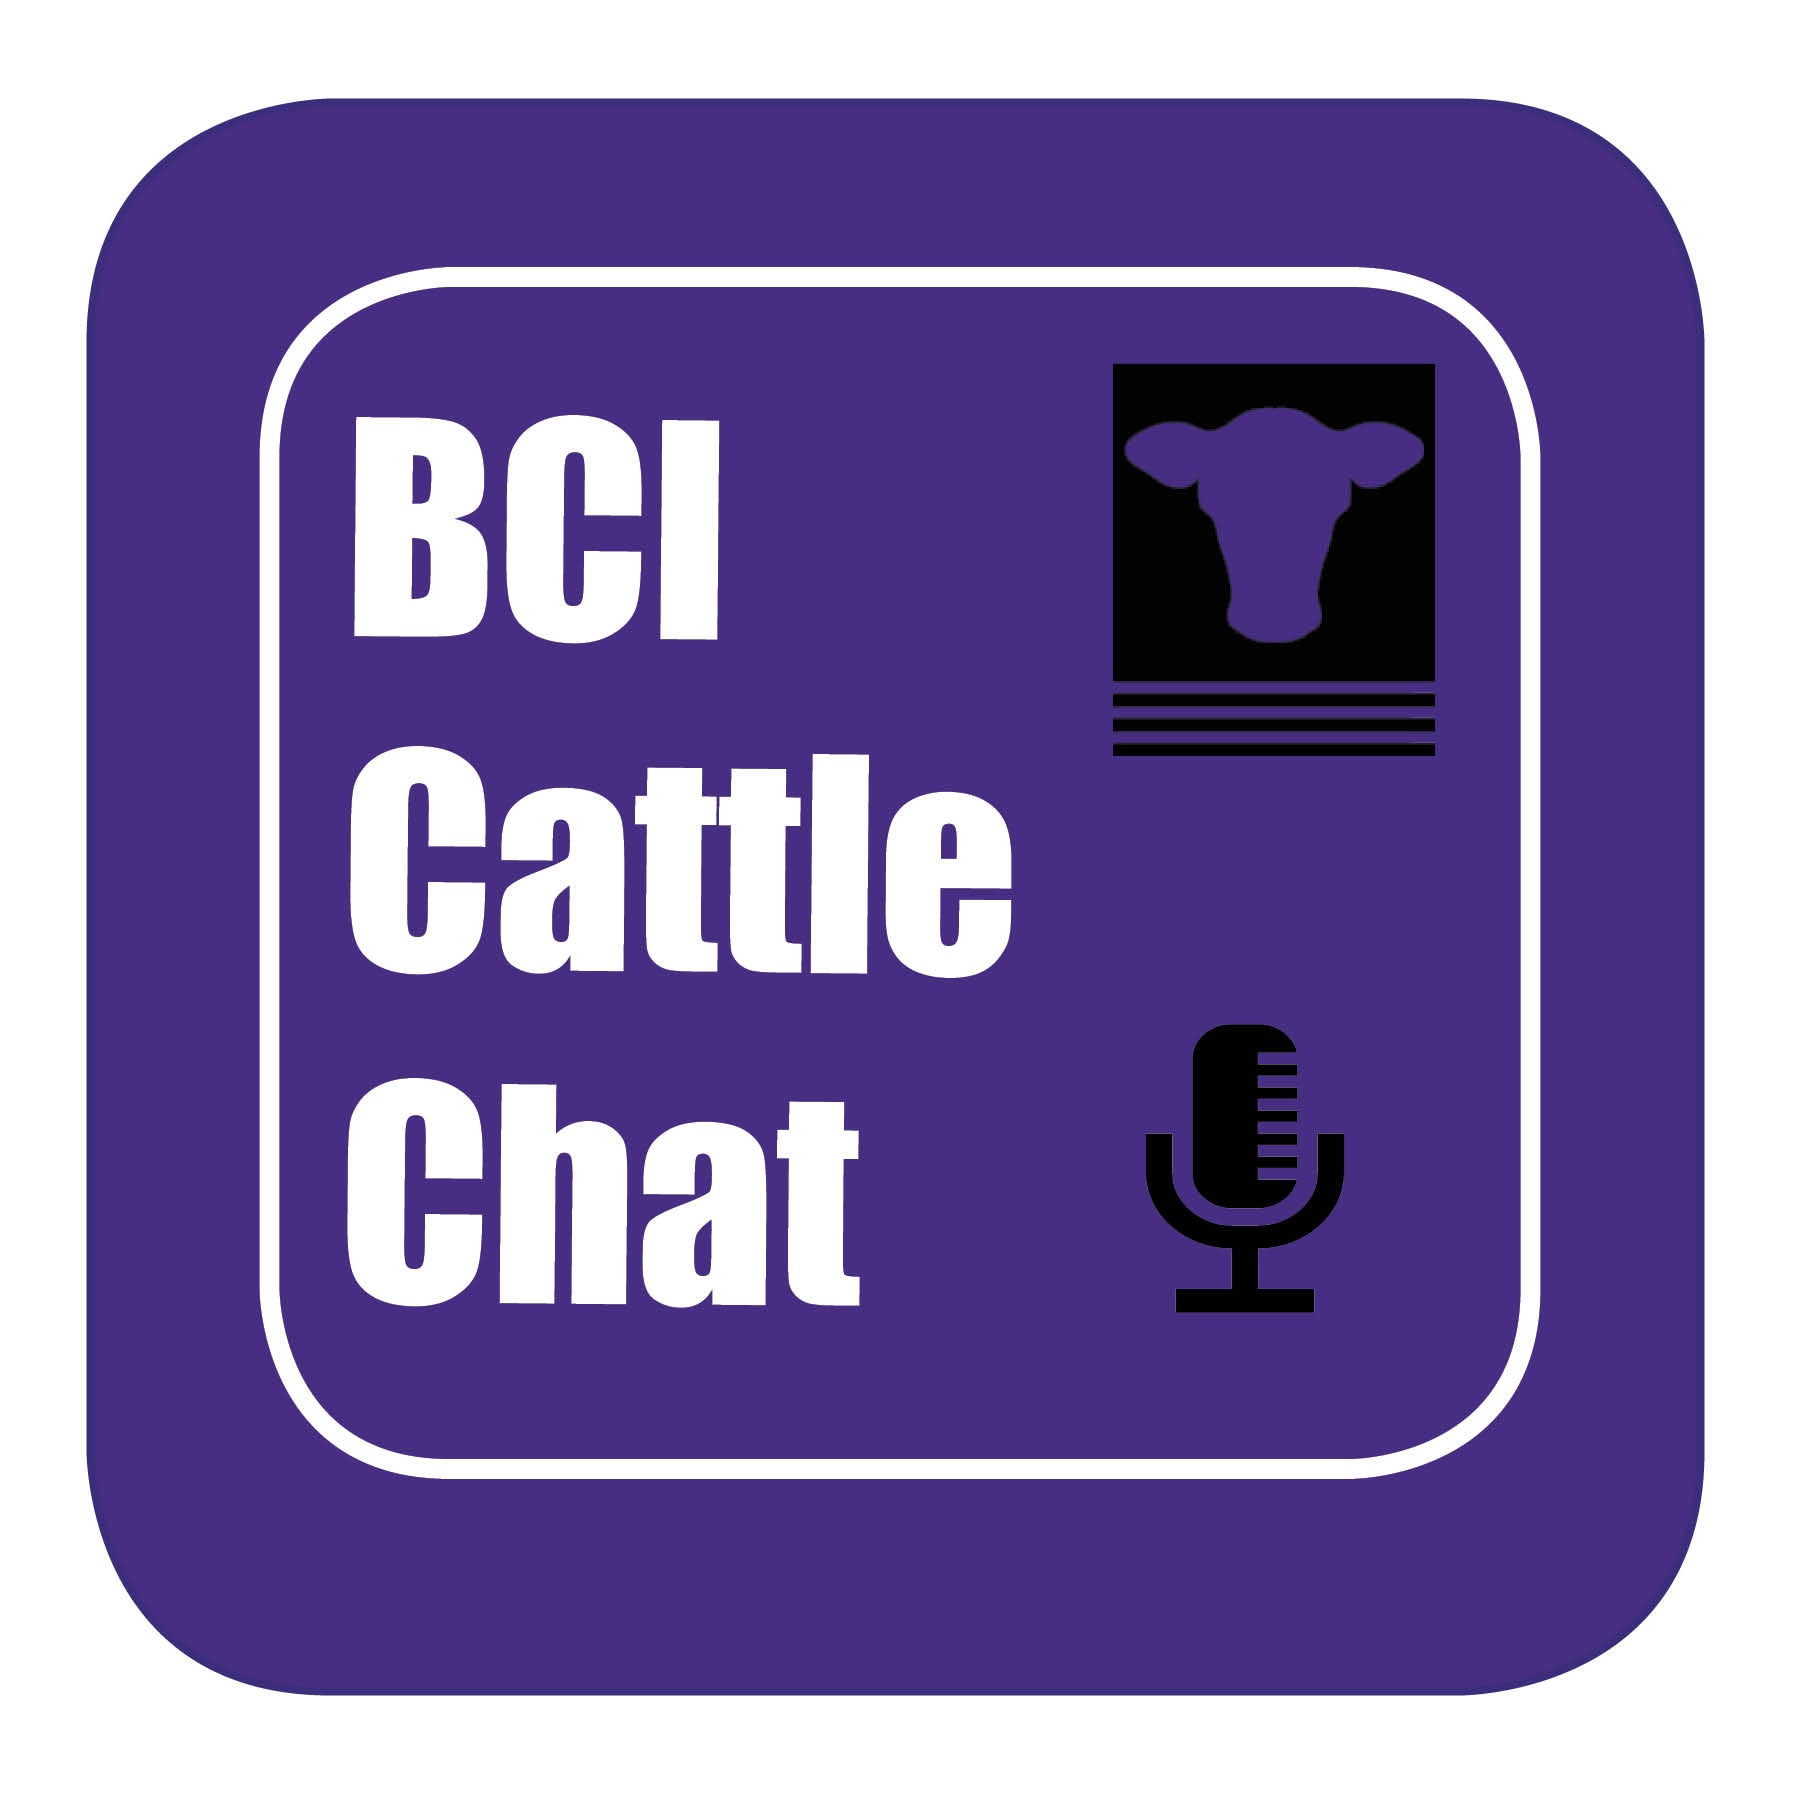 BCI Cattle Chat - Episode 32